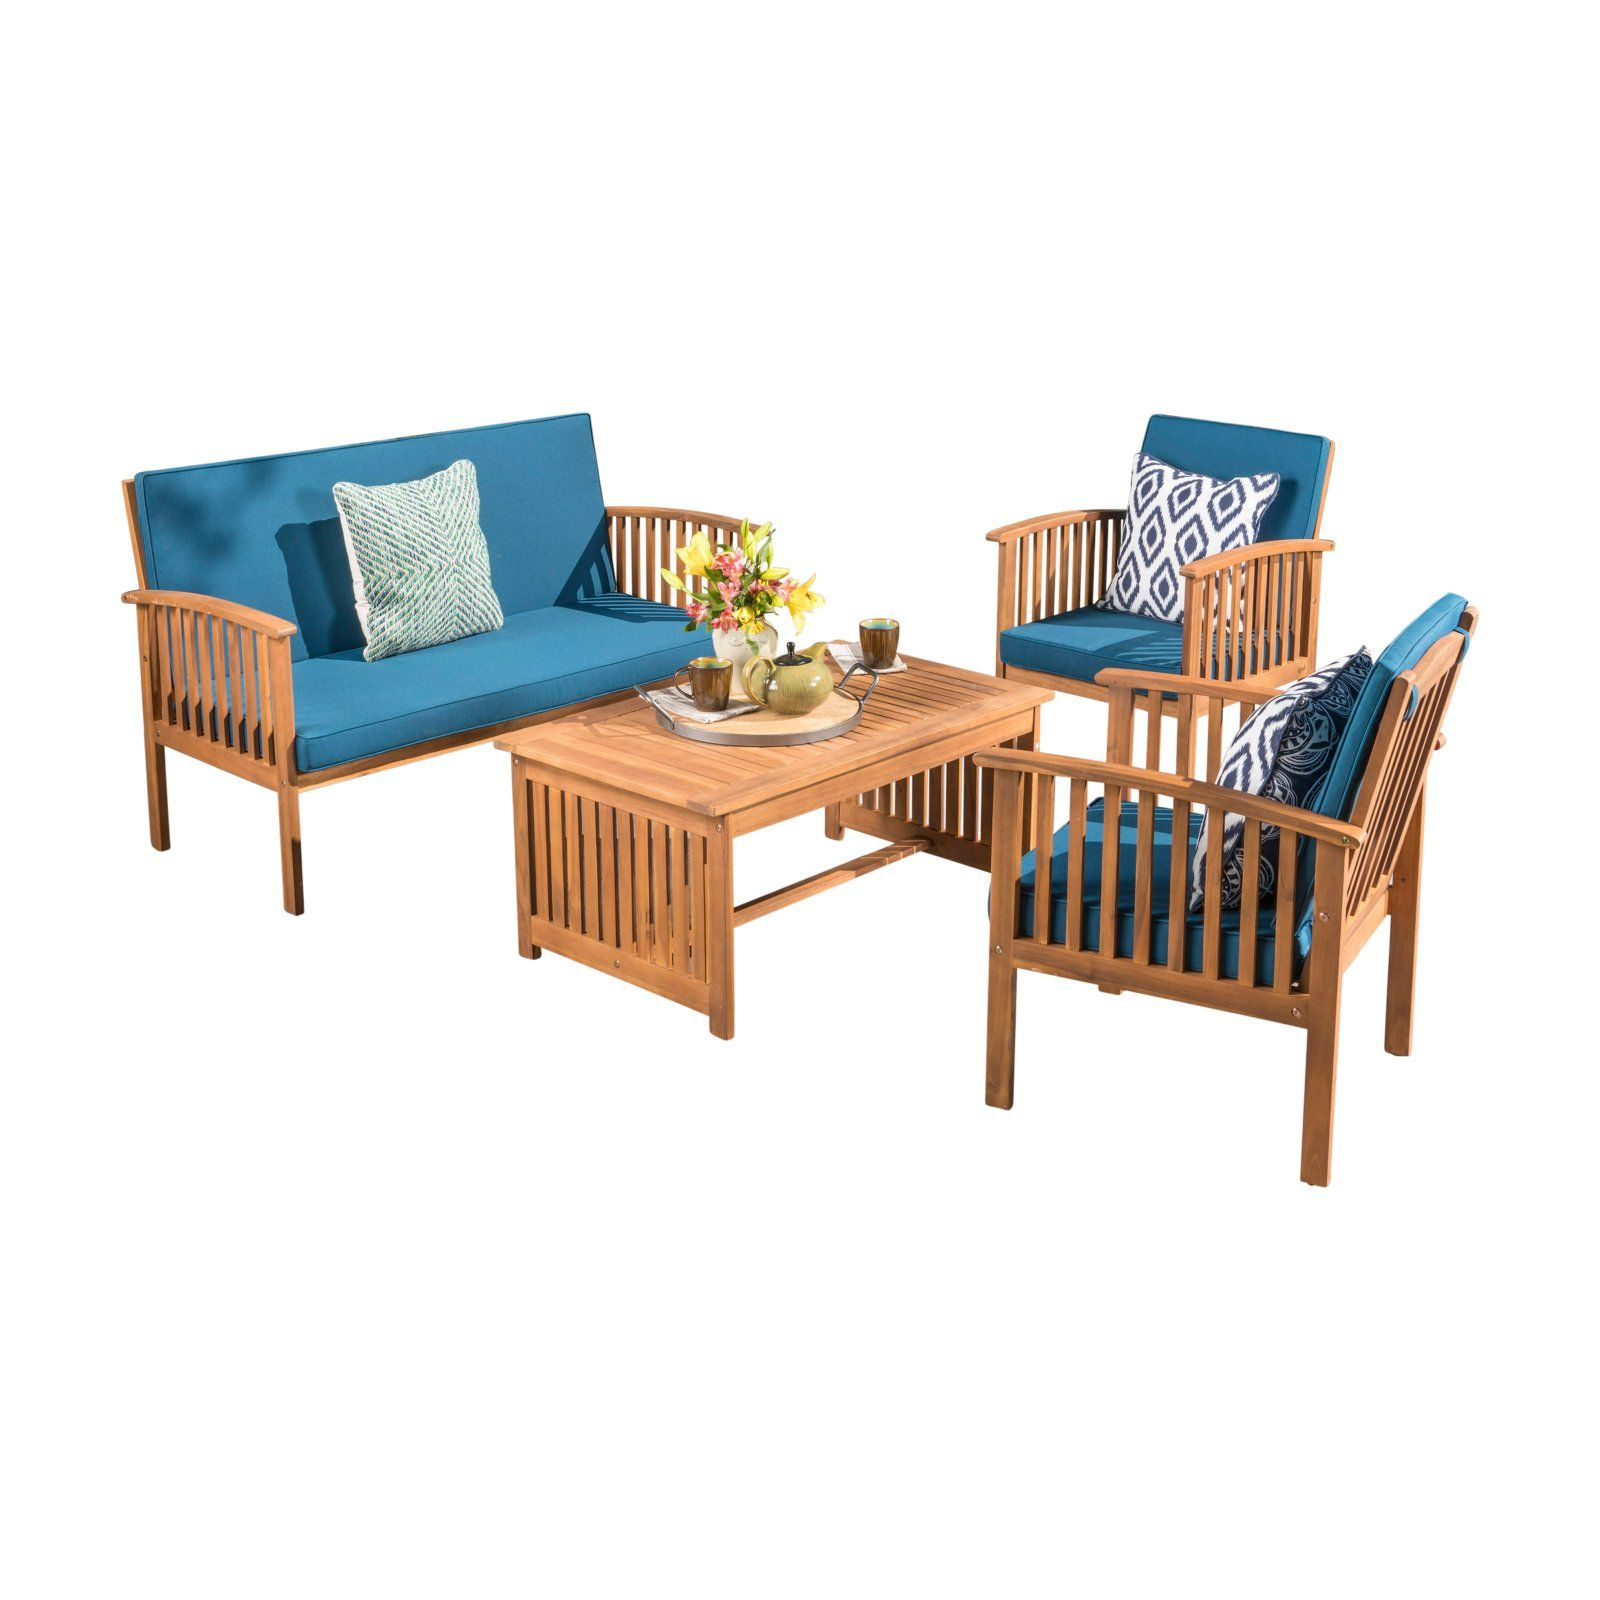 Astonishing Outdoor Best Selling Home Carolina Acacia Wood 4 Piece Patio Caraccident5 Cool Chair Designs And Ideas Caraccident5Info